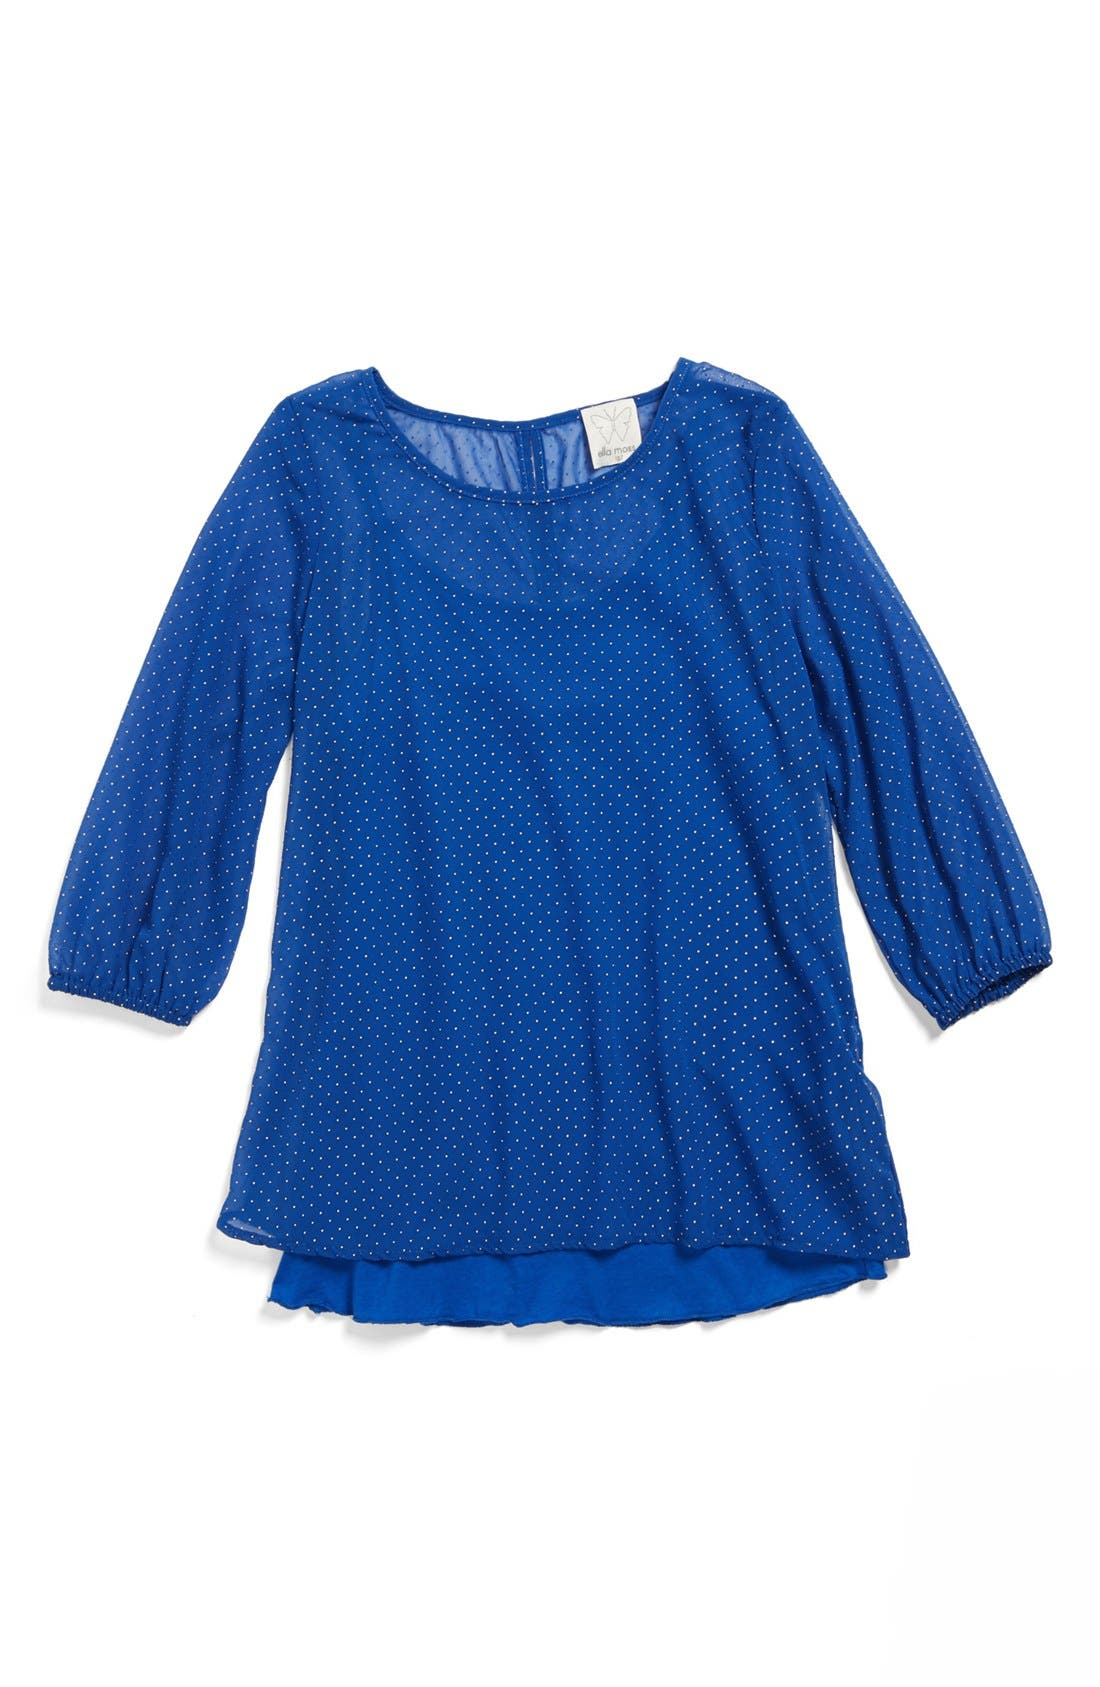 Alternate Image 1 Selected - Ella Moss 'Lola' Tunic (Big Girls)